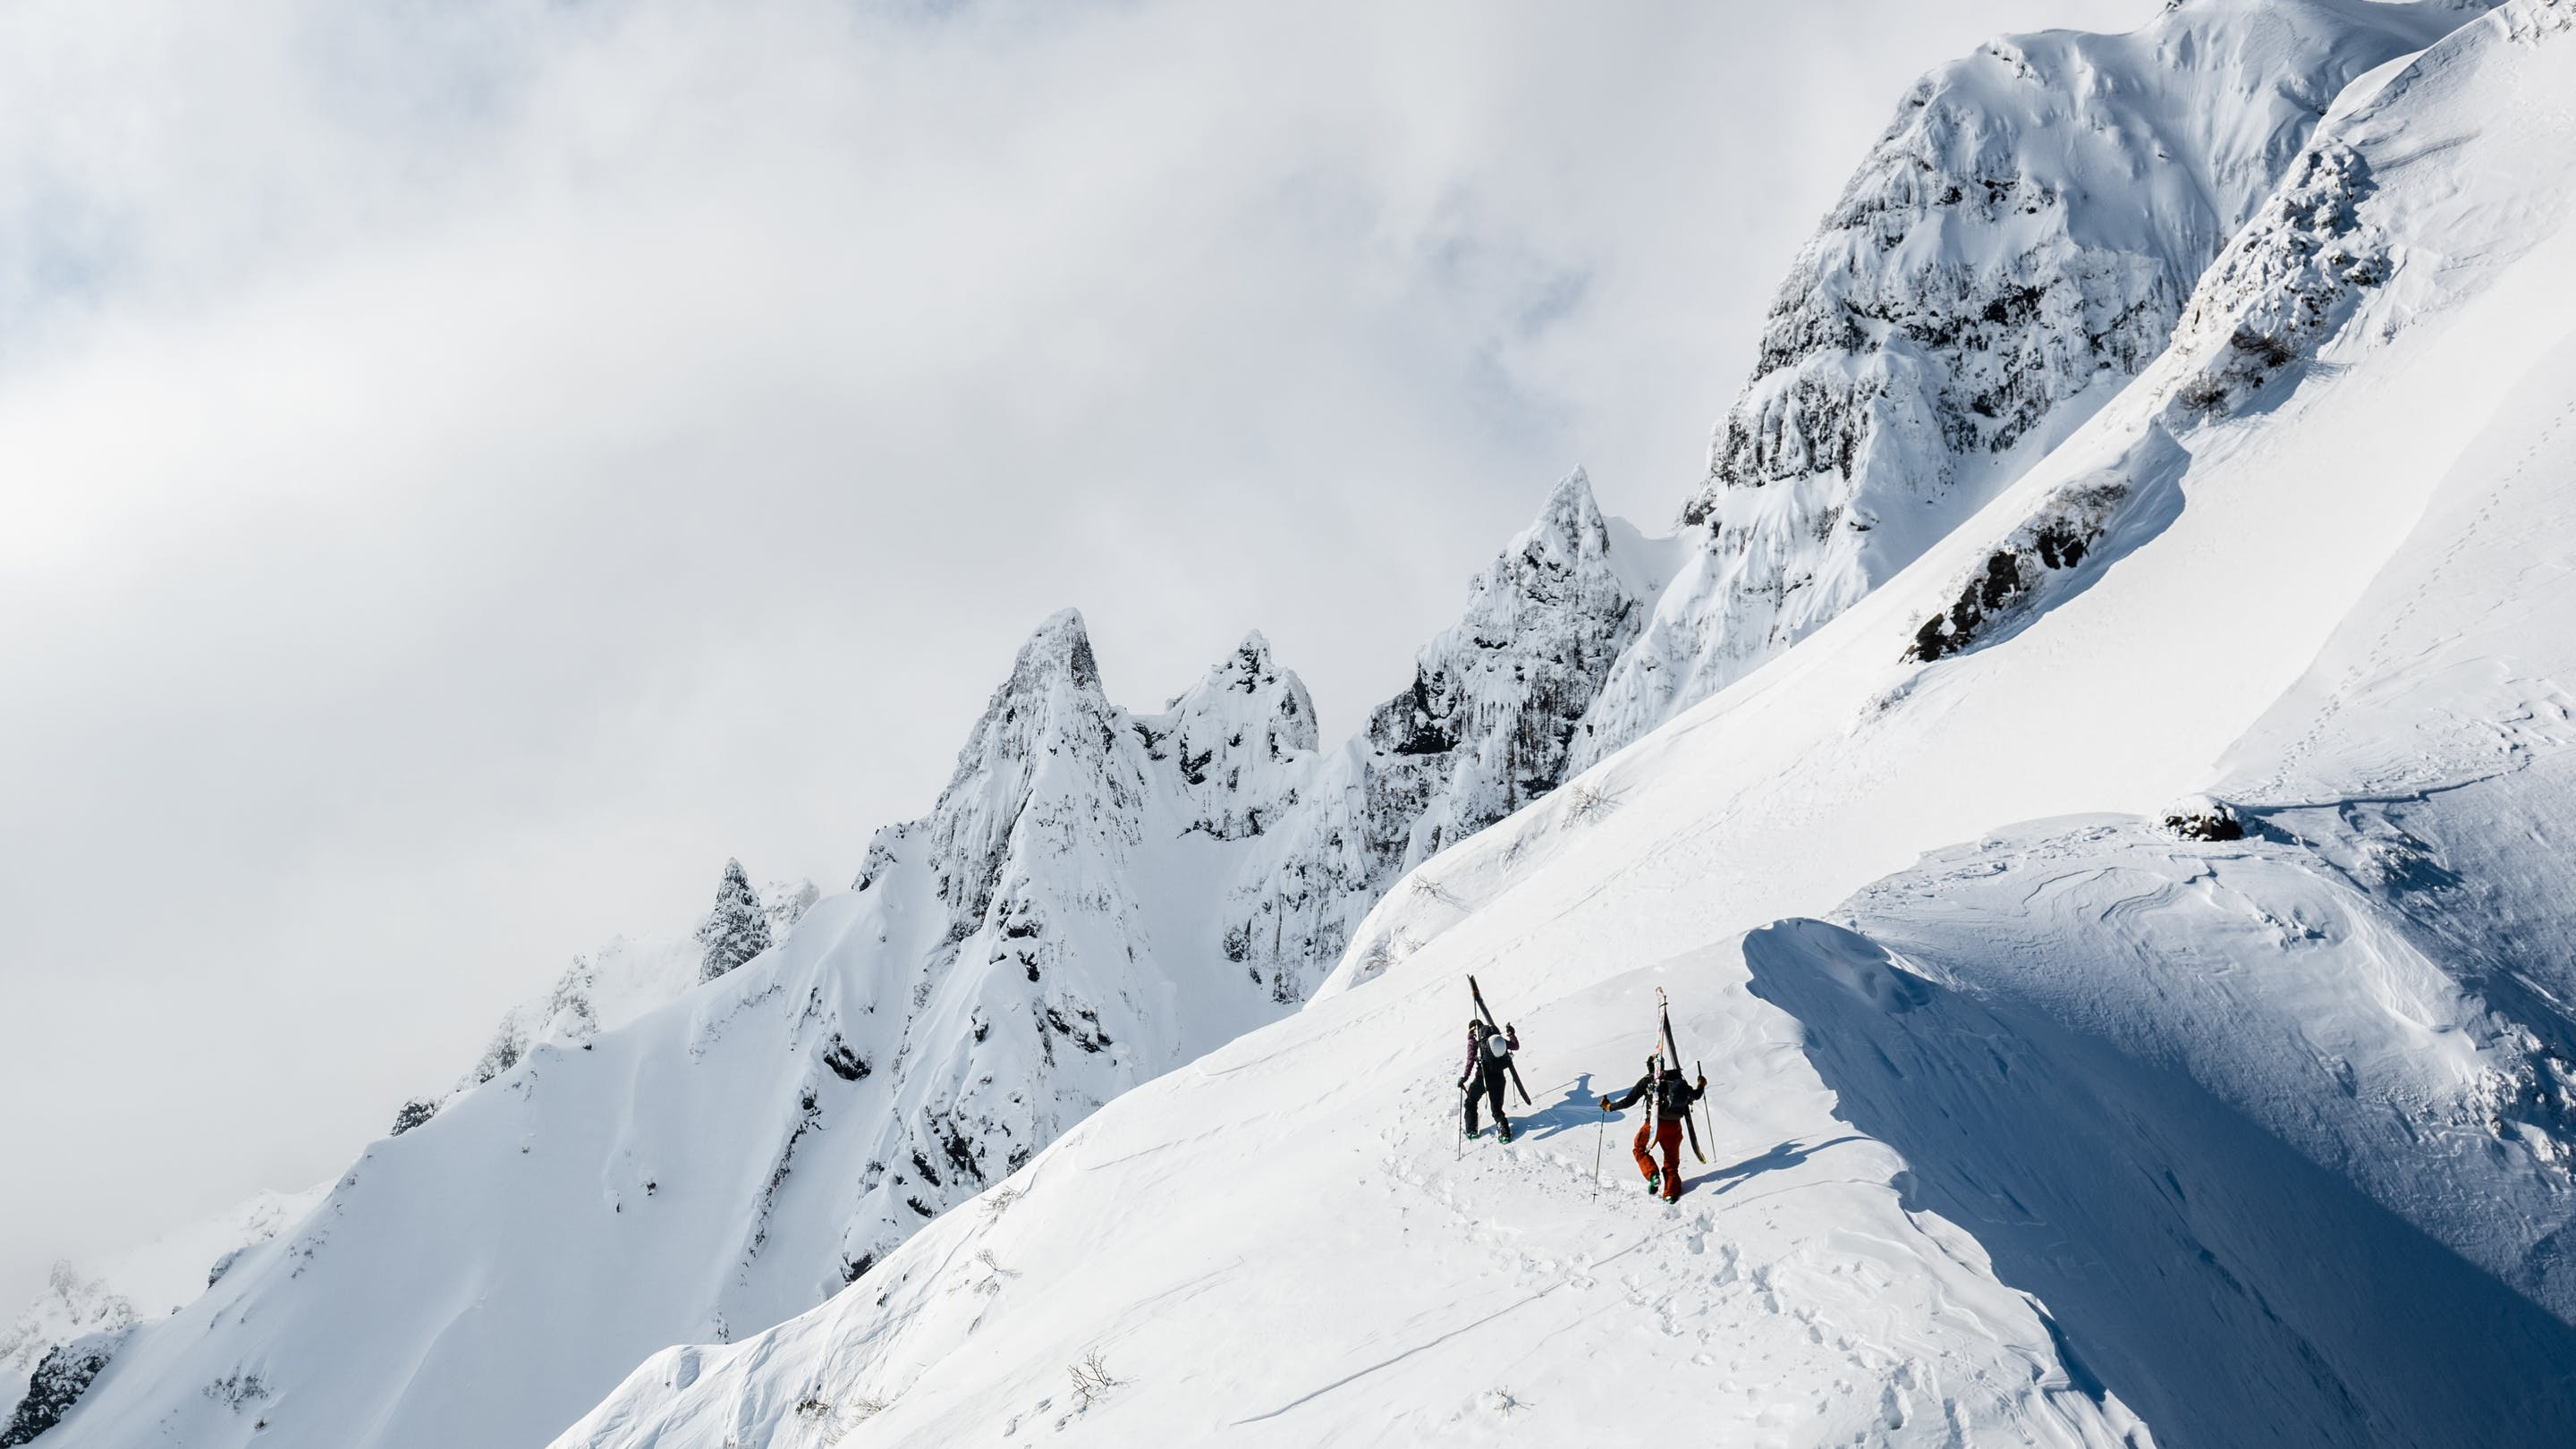 two skiers working along a ridgeline